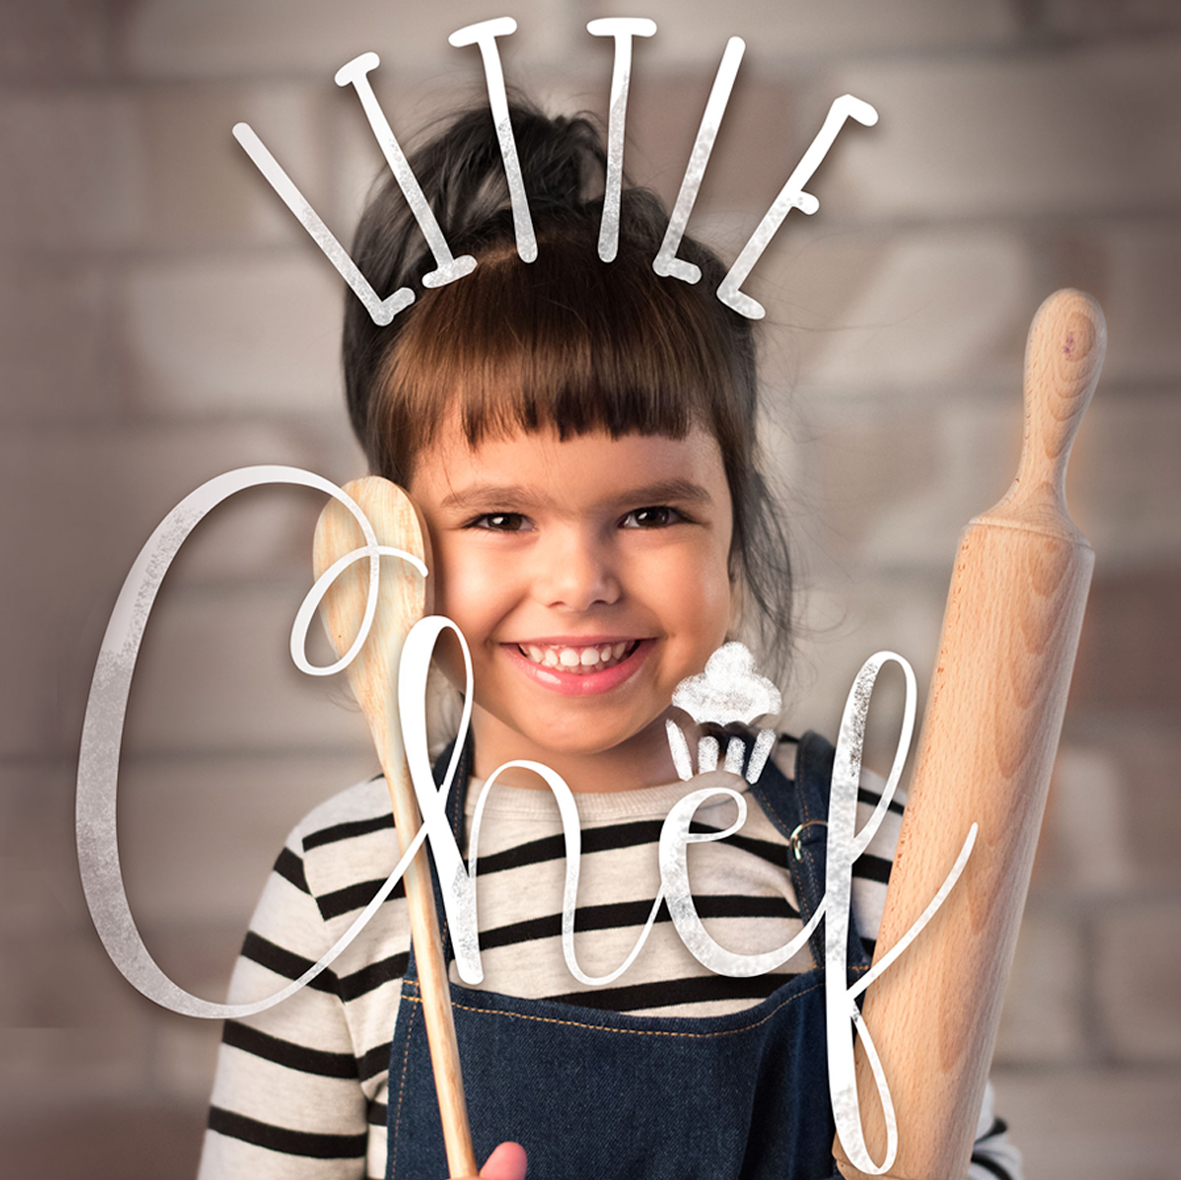 Little Chef: Cuinem en anglès!